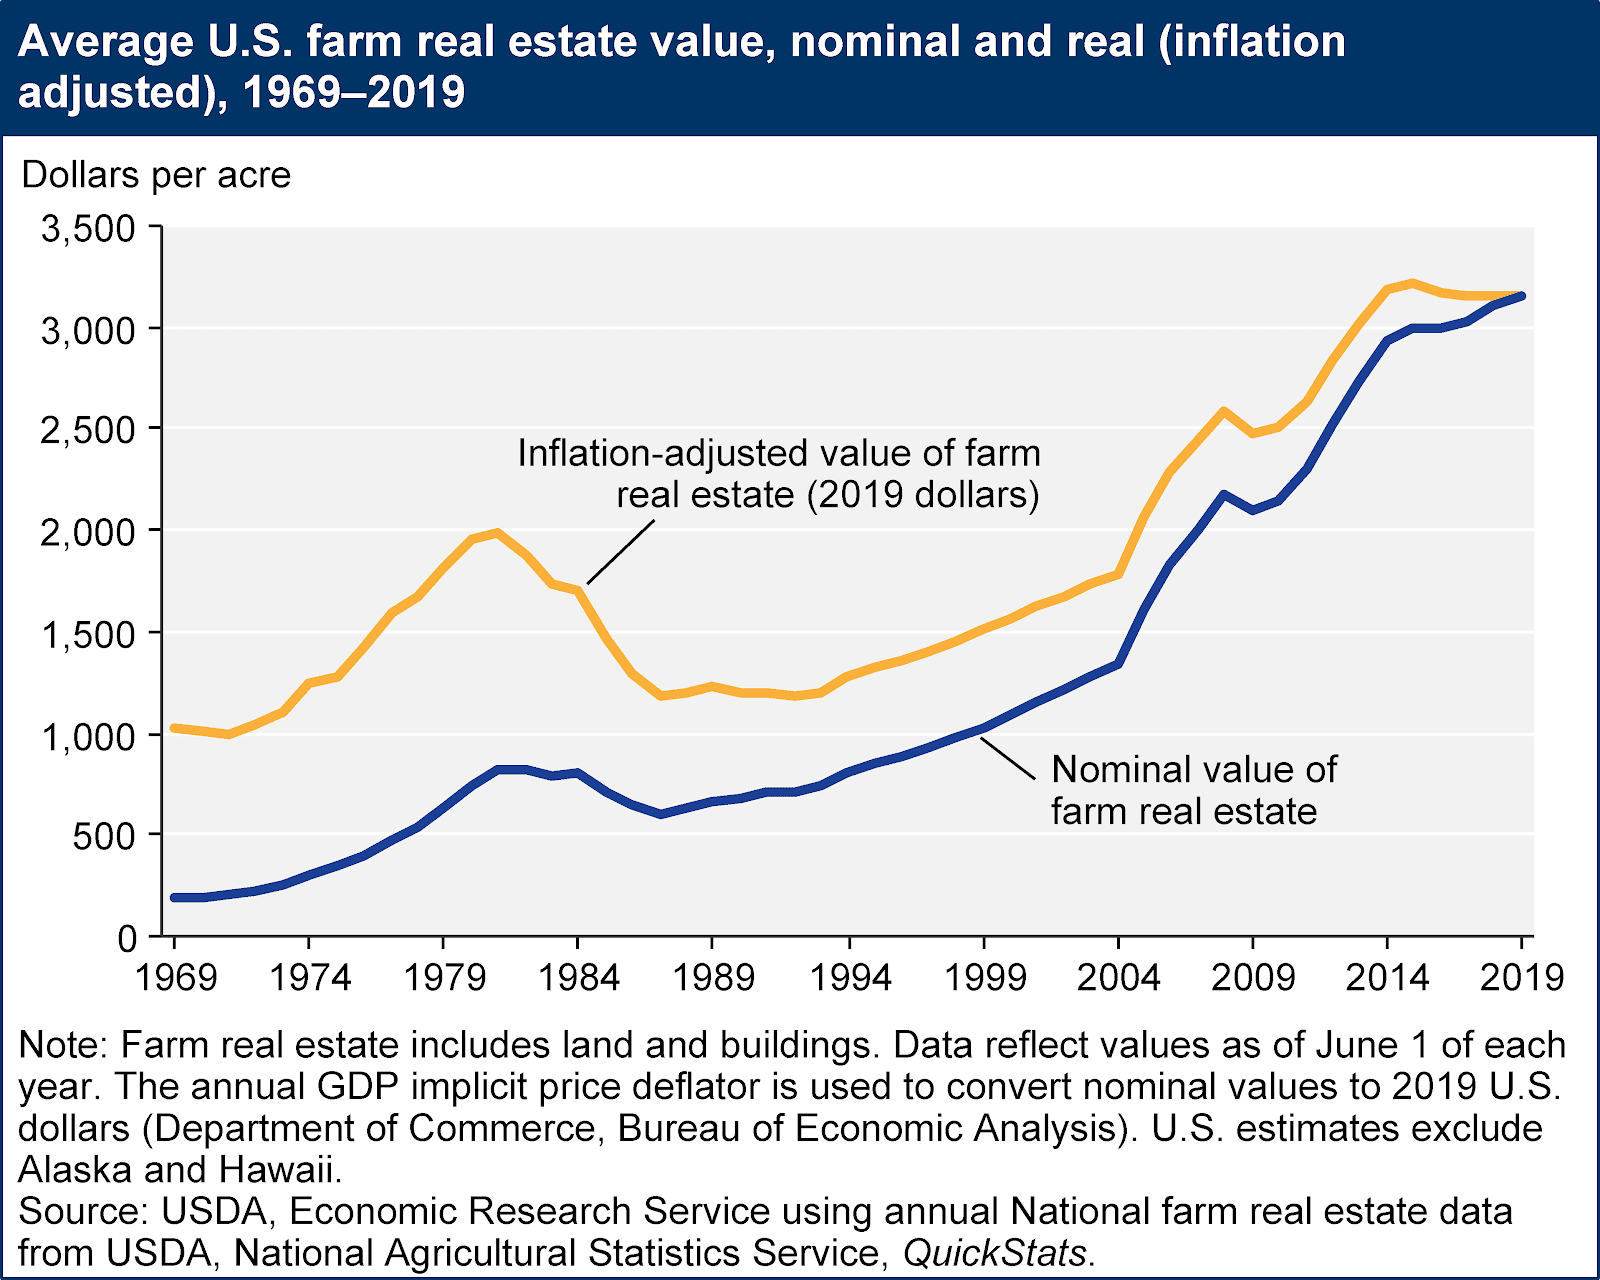 U.S. farm real estate value, nominal and real inflation adjusted 1969 - 2019